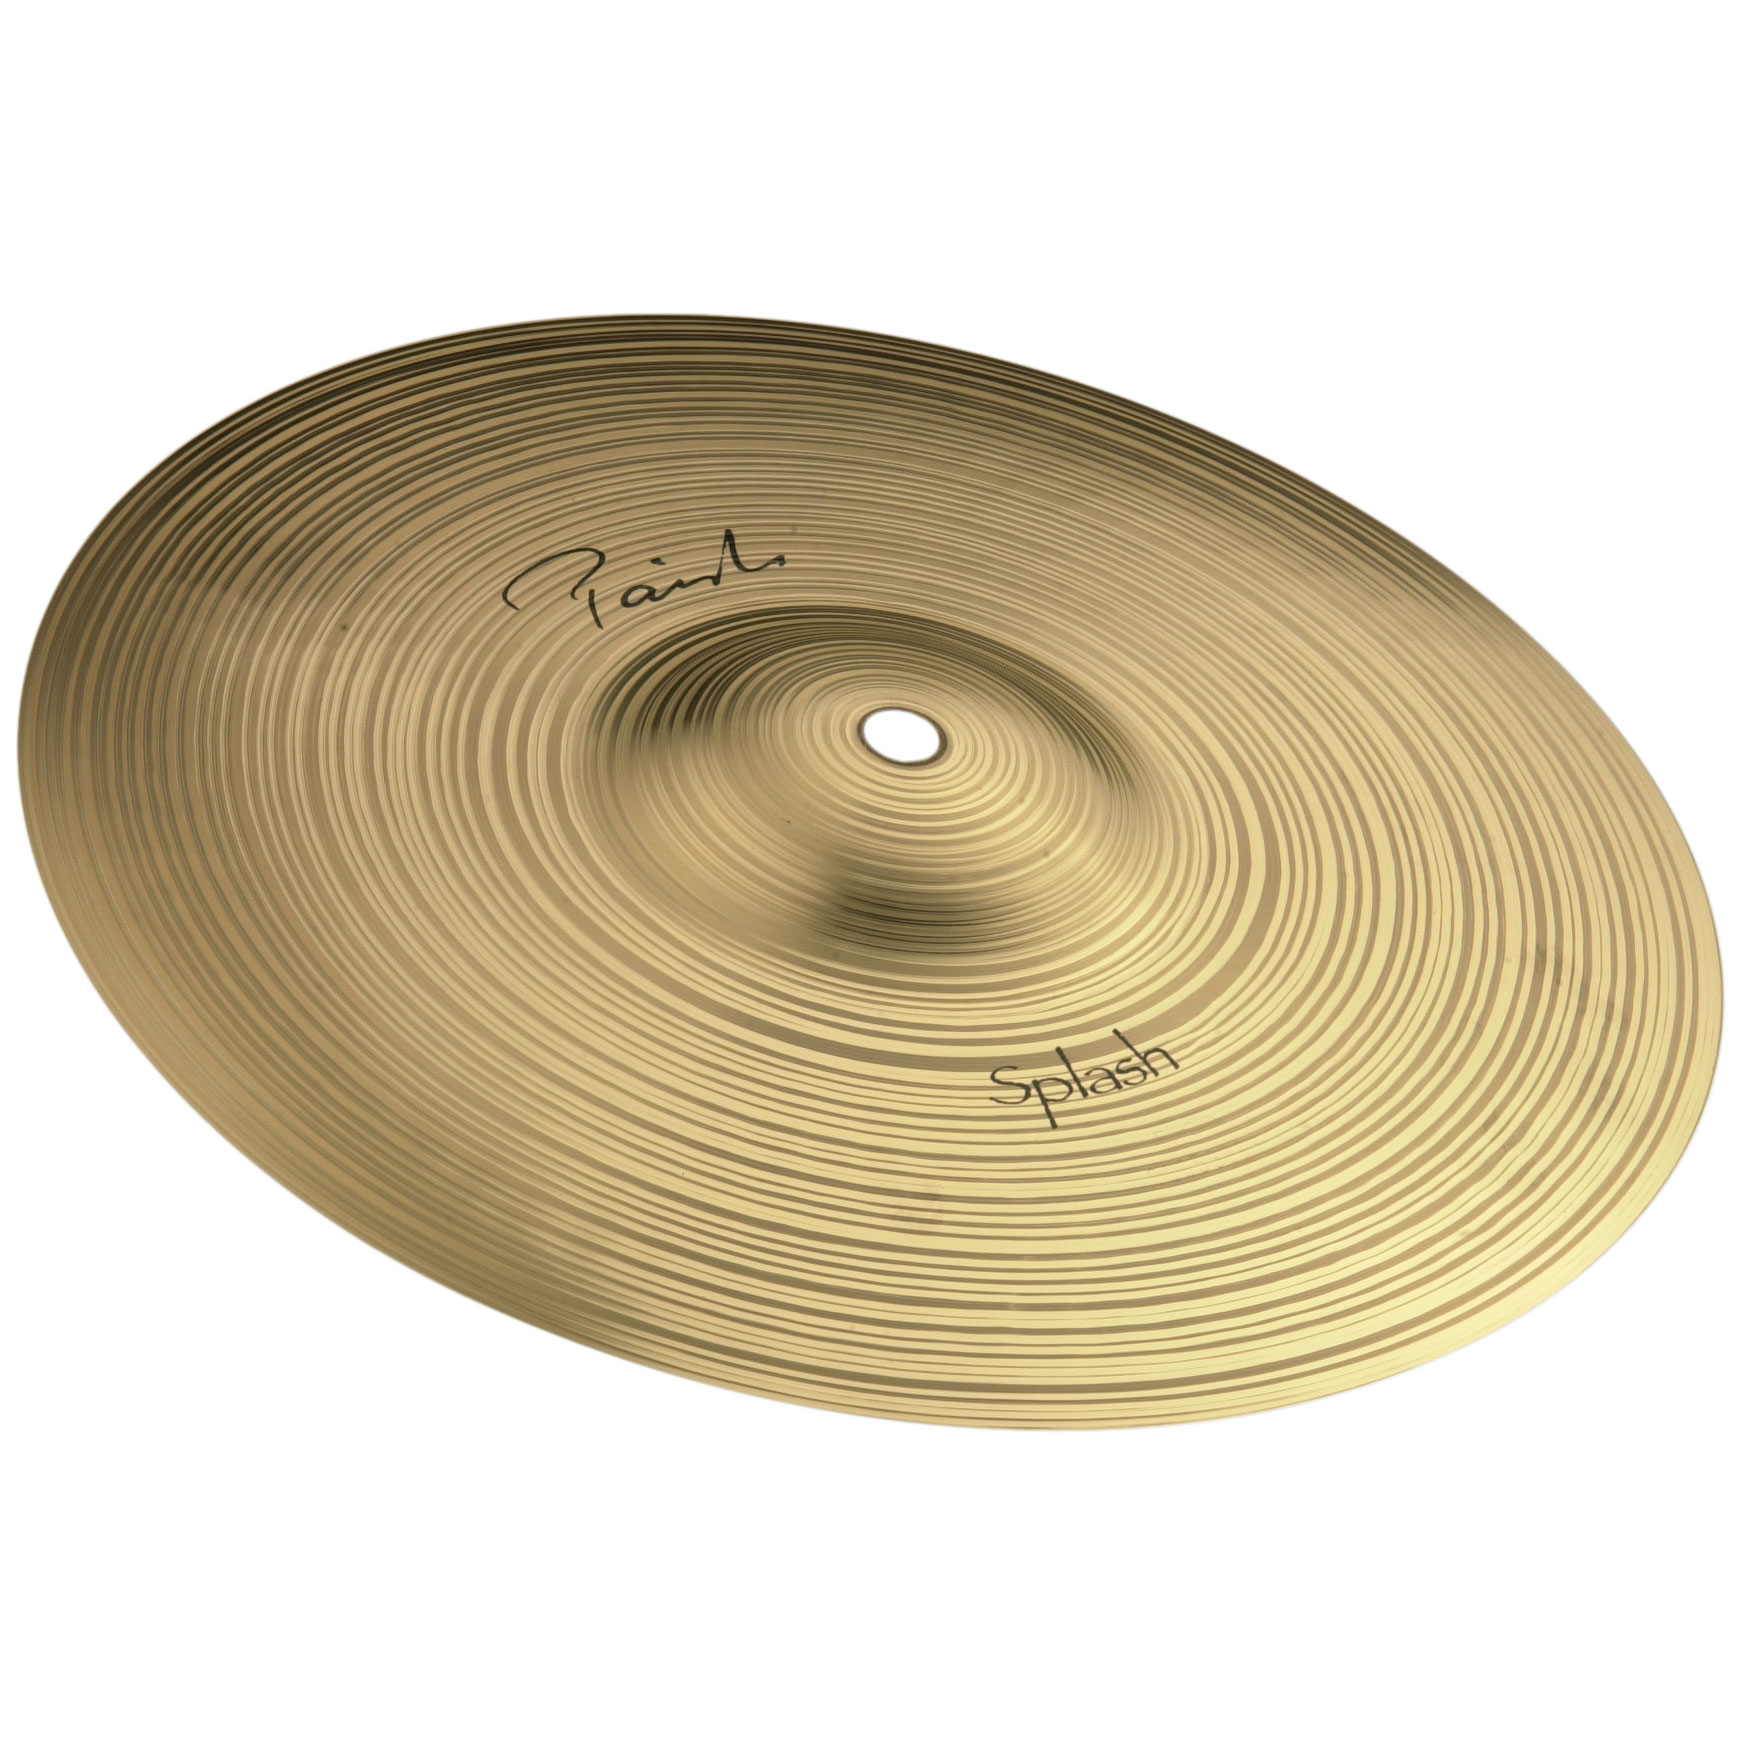 "Paiste 6"" Signature Series Splash Cymbal"